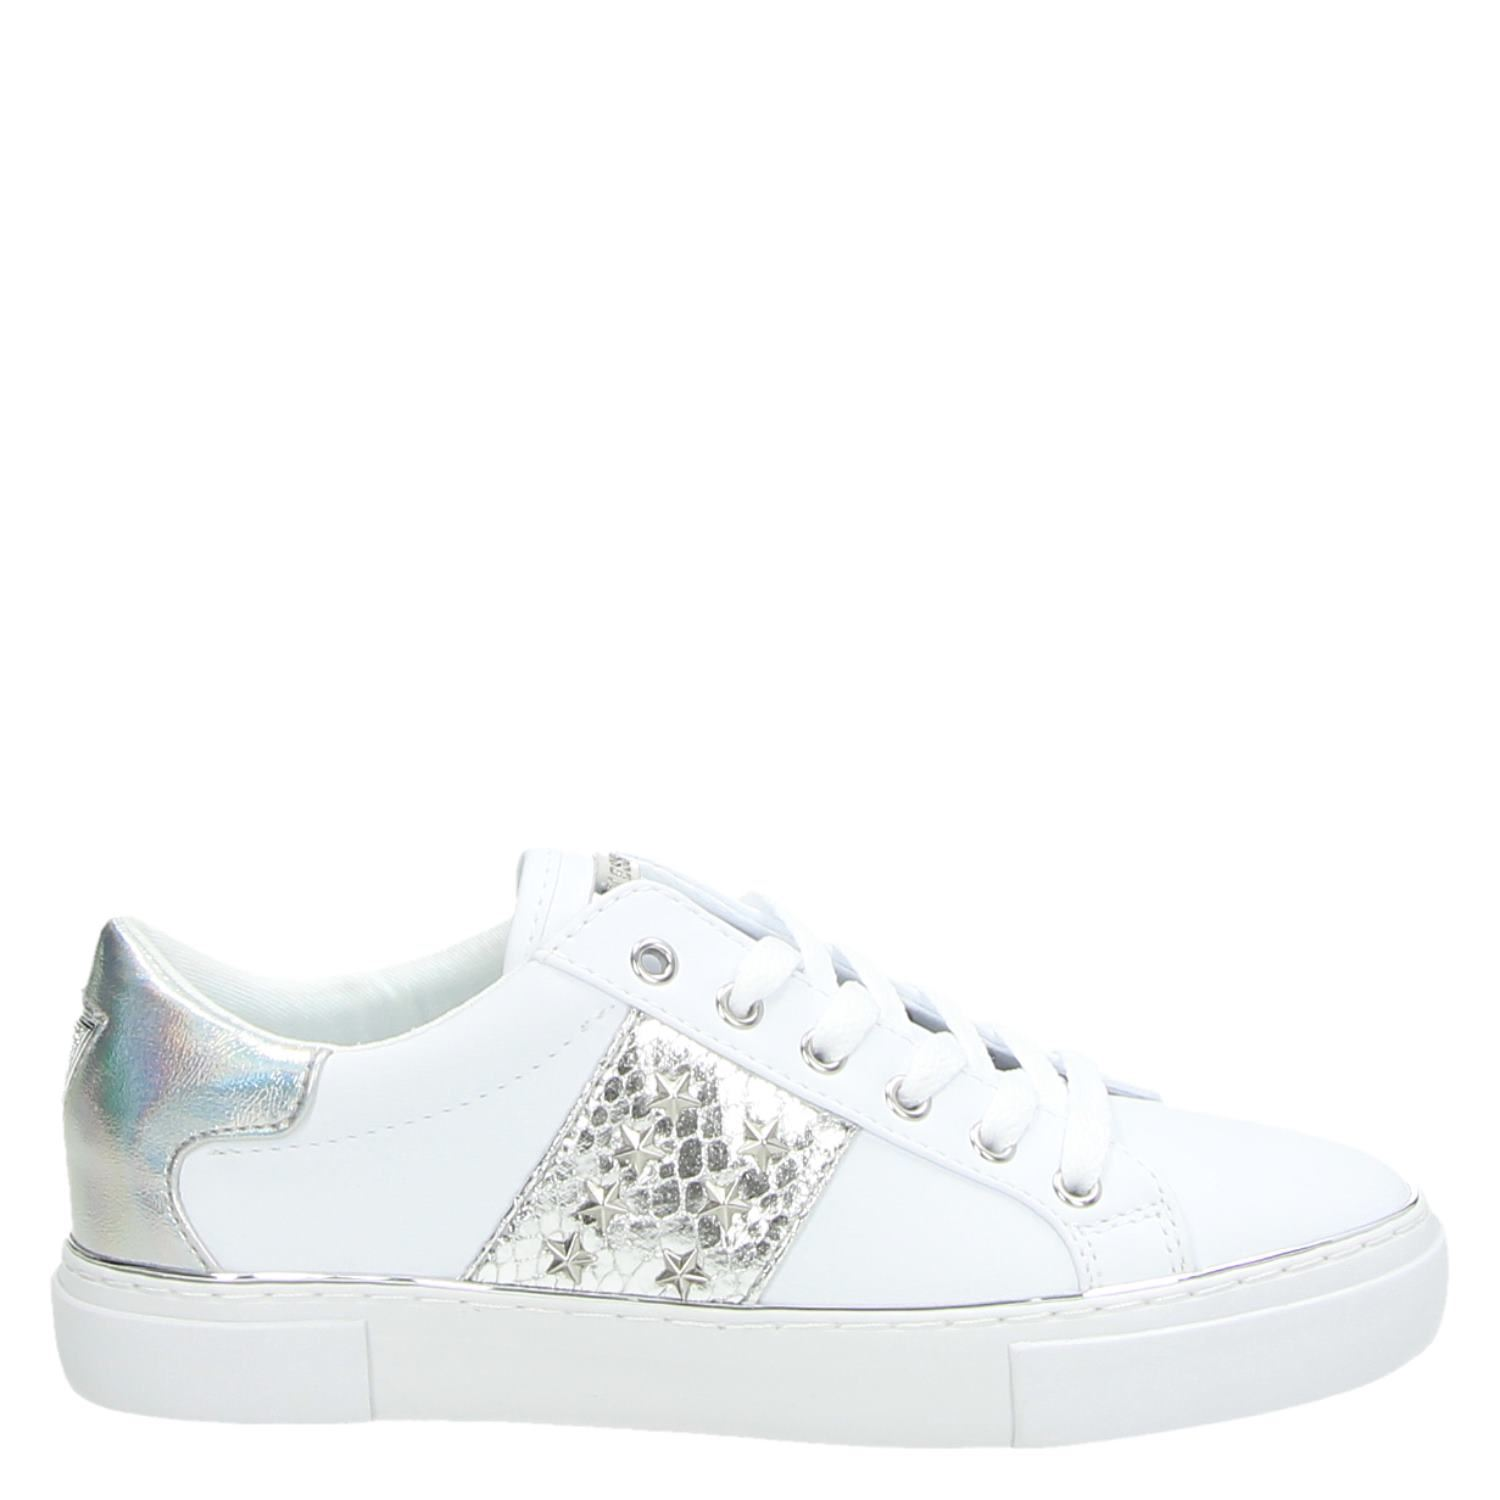 a8a60cbab12 Guess FL6MG5 dames lage sneakers wit